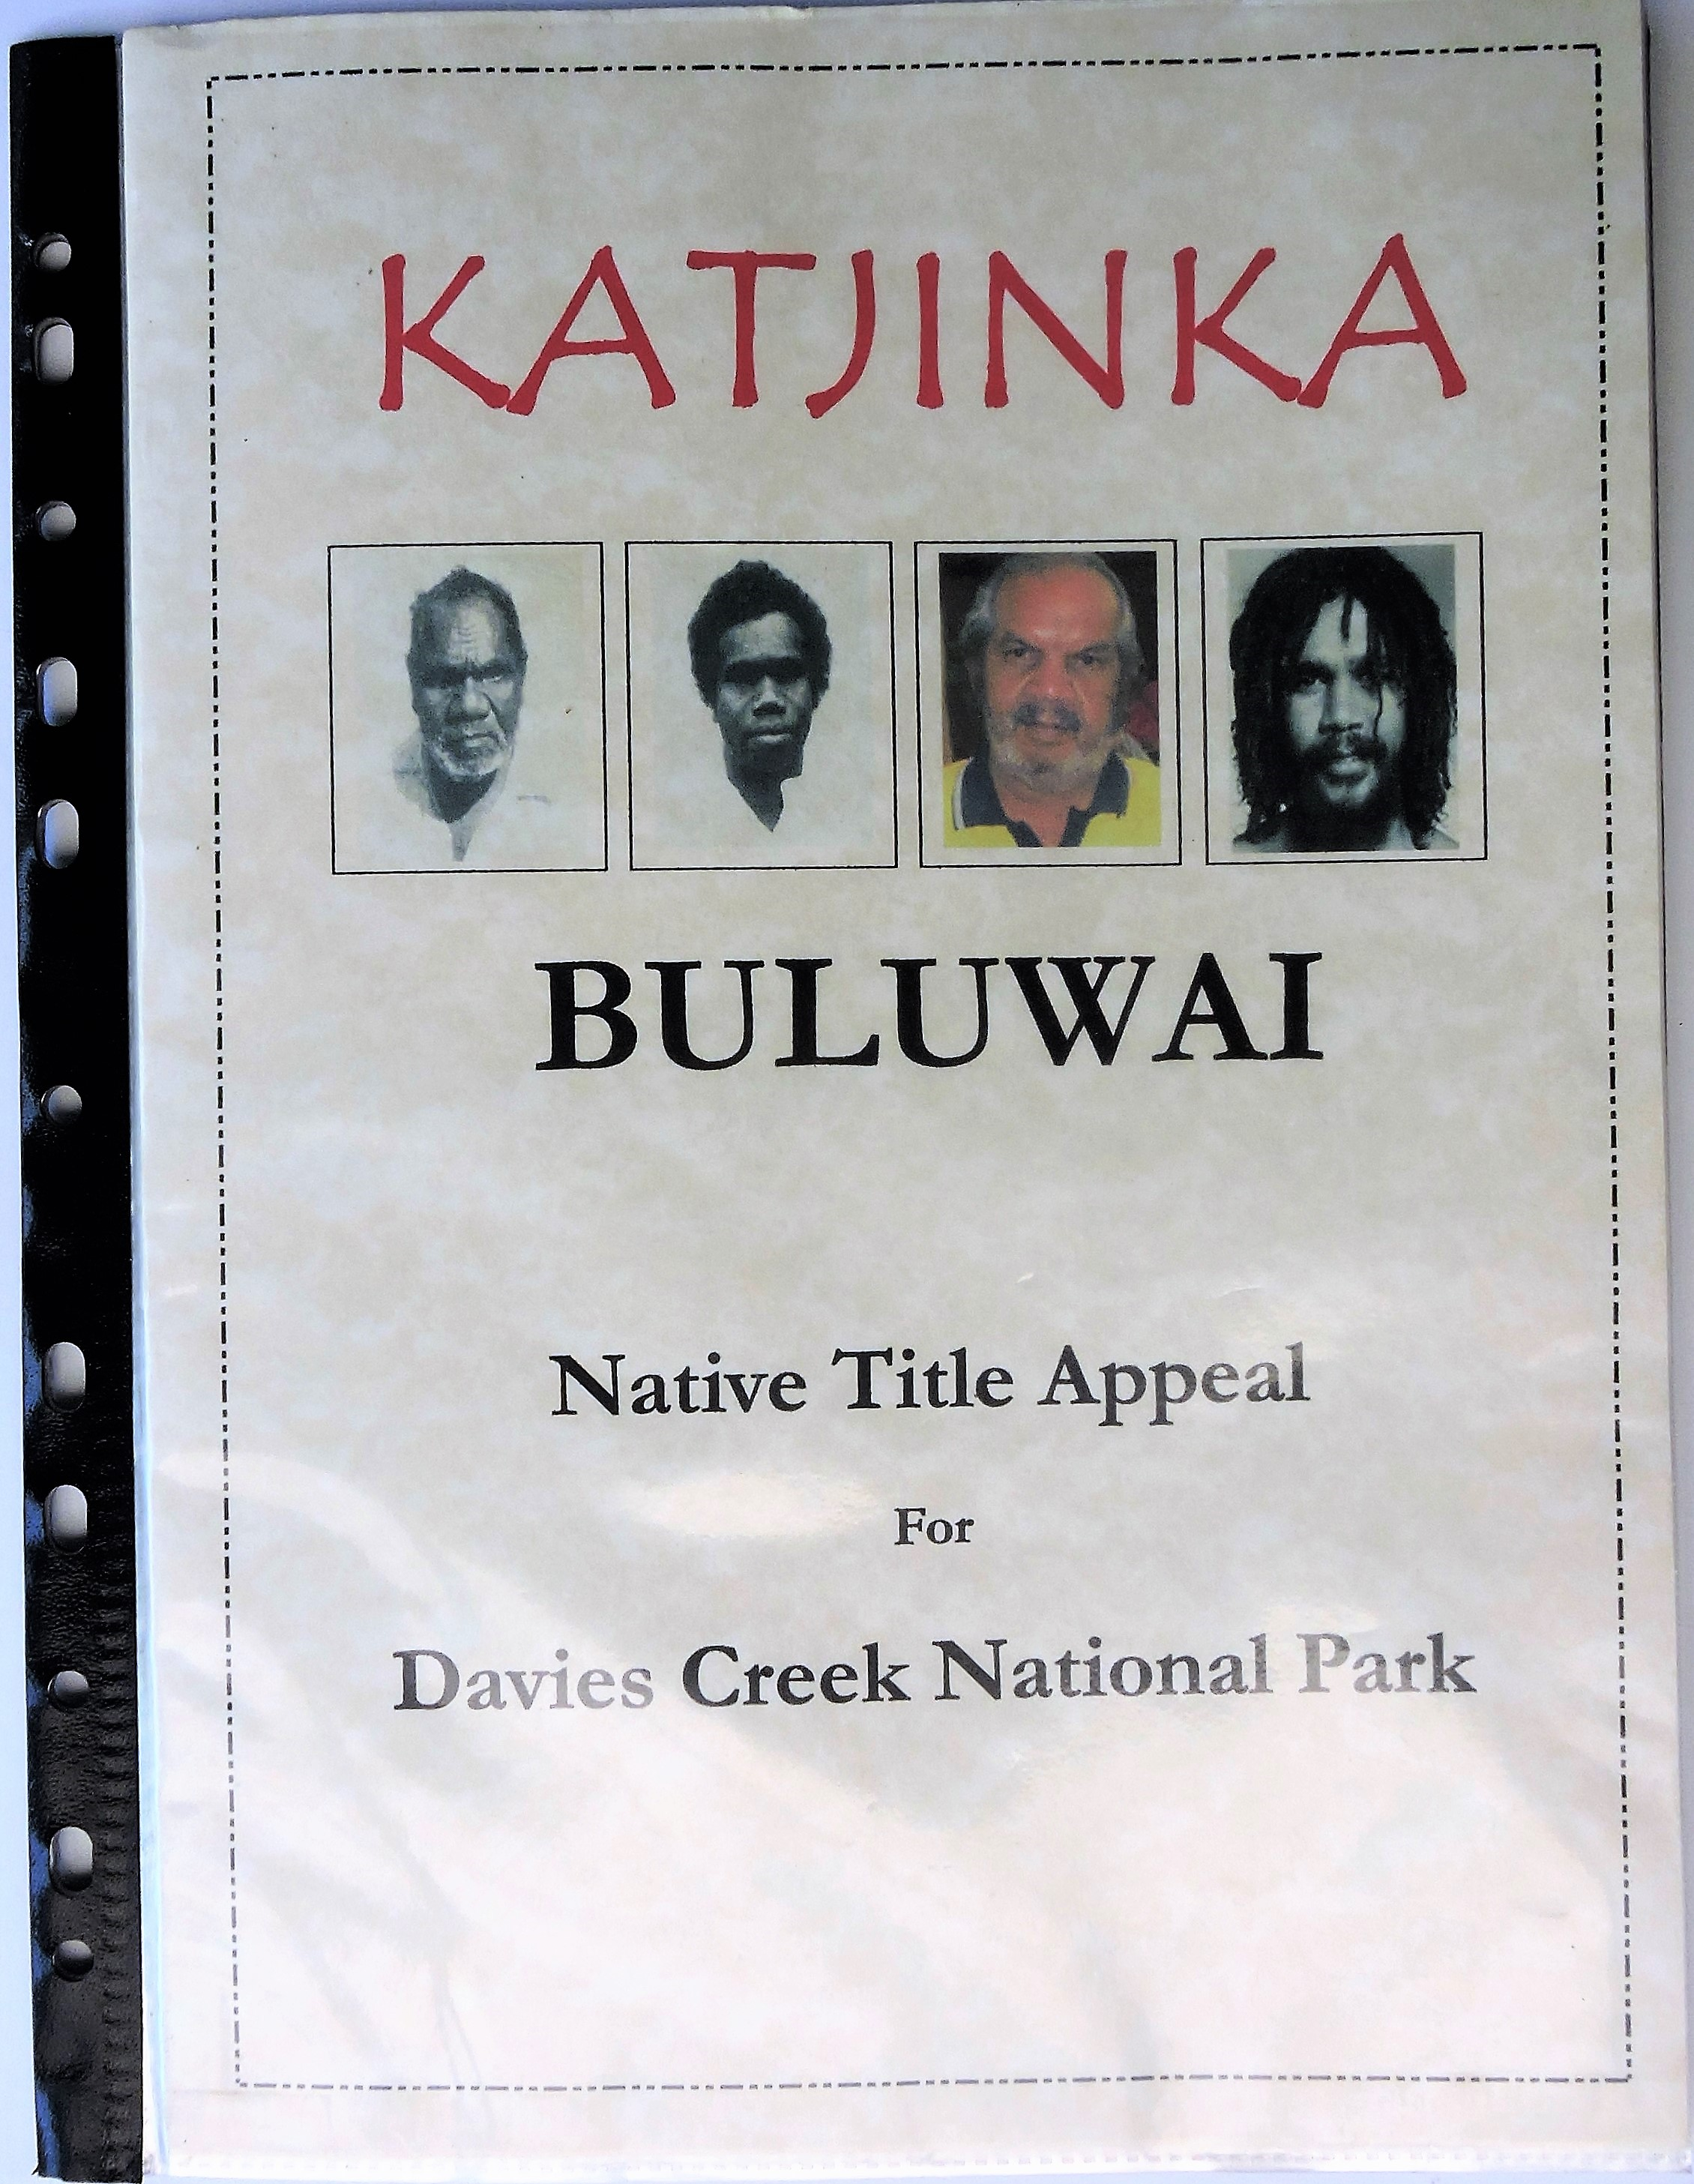 Willie-Brim-Bulwai-Buluwai-Native-Title-Appeal-Davies-Creek-National-Park